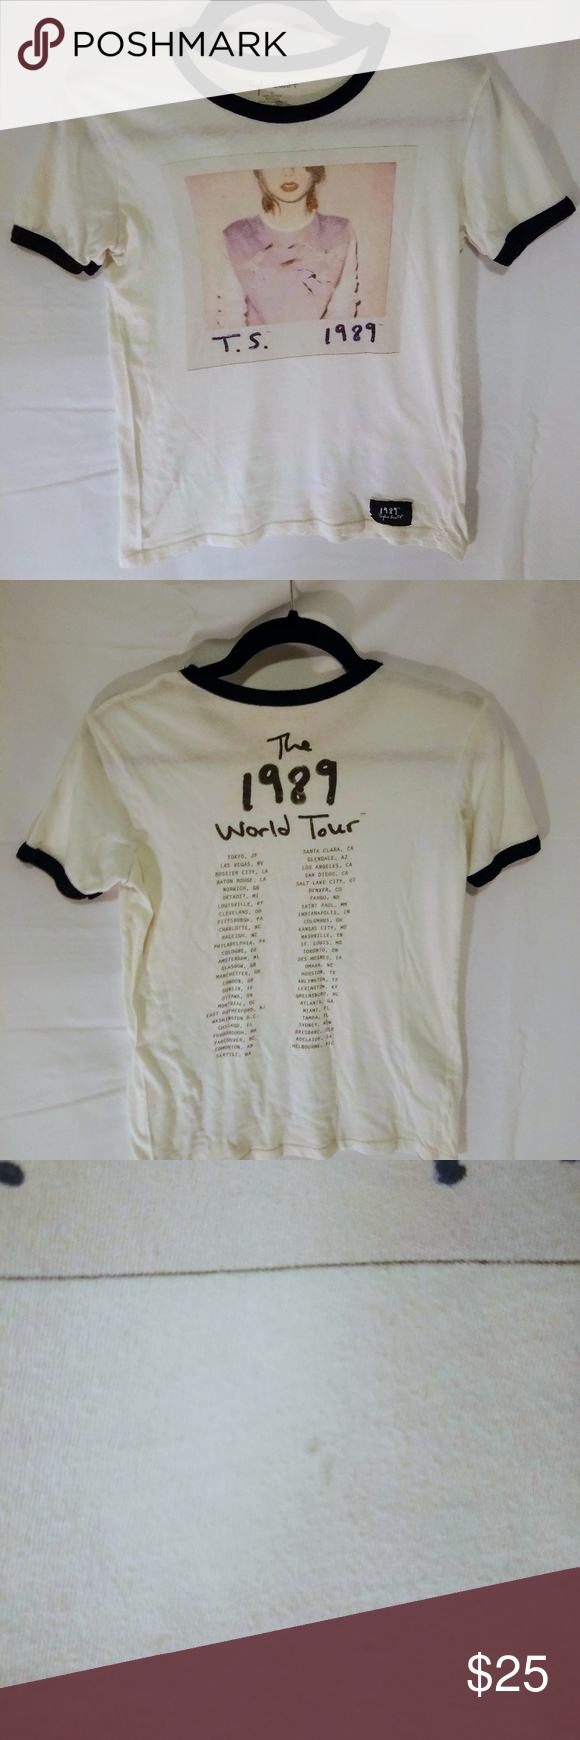 Taylor Swift concert tee Taylor Swift 1989 tour concert tee. Great used condition. Has a small stain on the front that you can barely see. See attached picture. Tops Tees - Short Sleeve #countryconcertoutfit